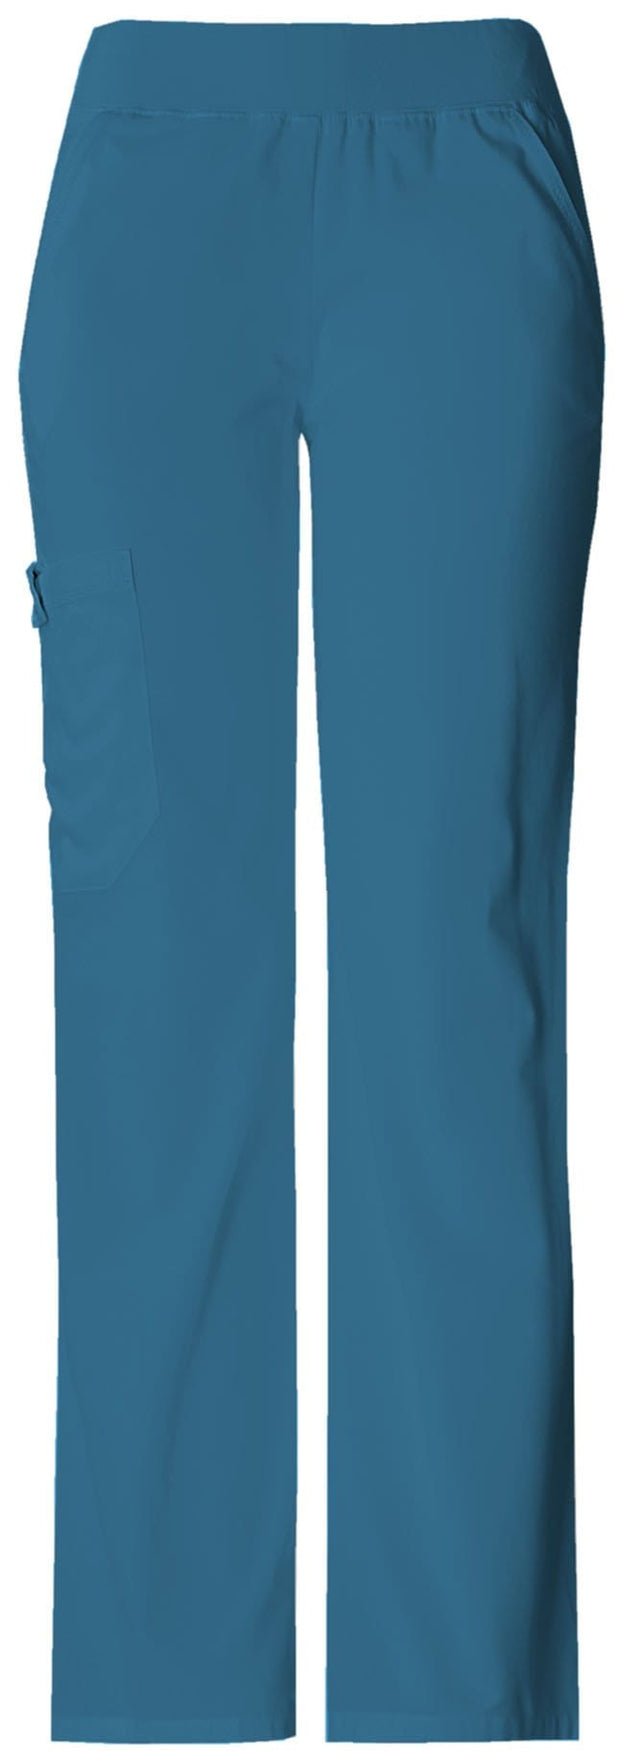 Cherokee Flexibles (Tonal) Women's Mid Rise Knit Waist Pull-On Pant - 2085P  Petite - ScrubHaven